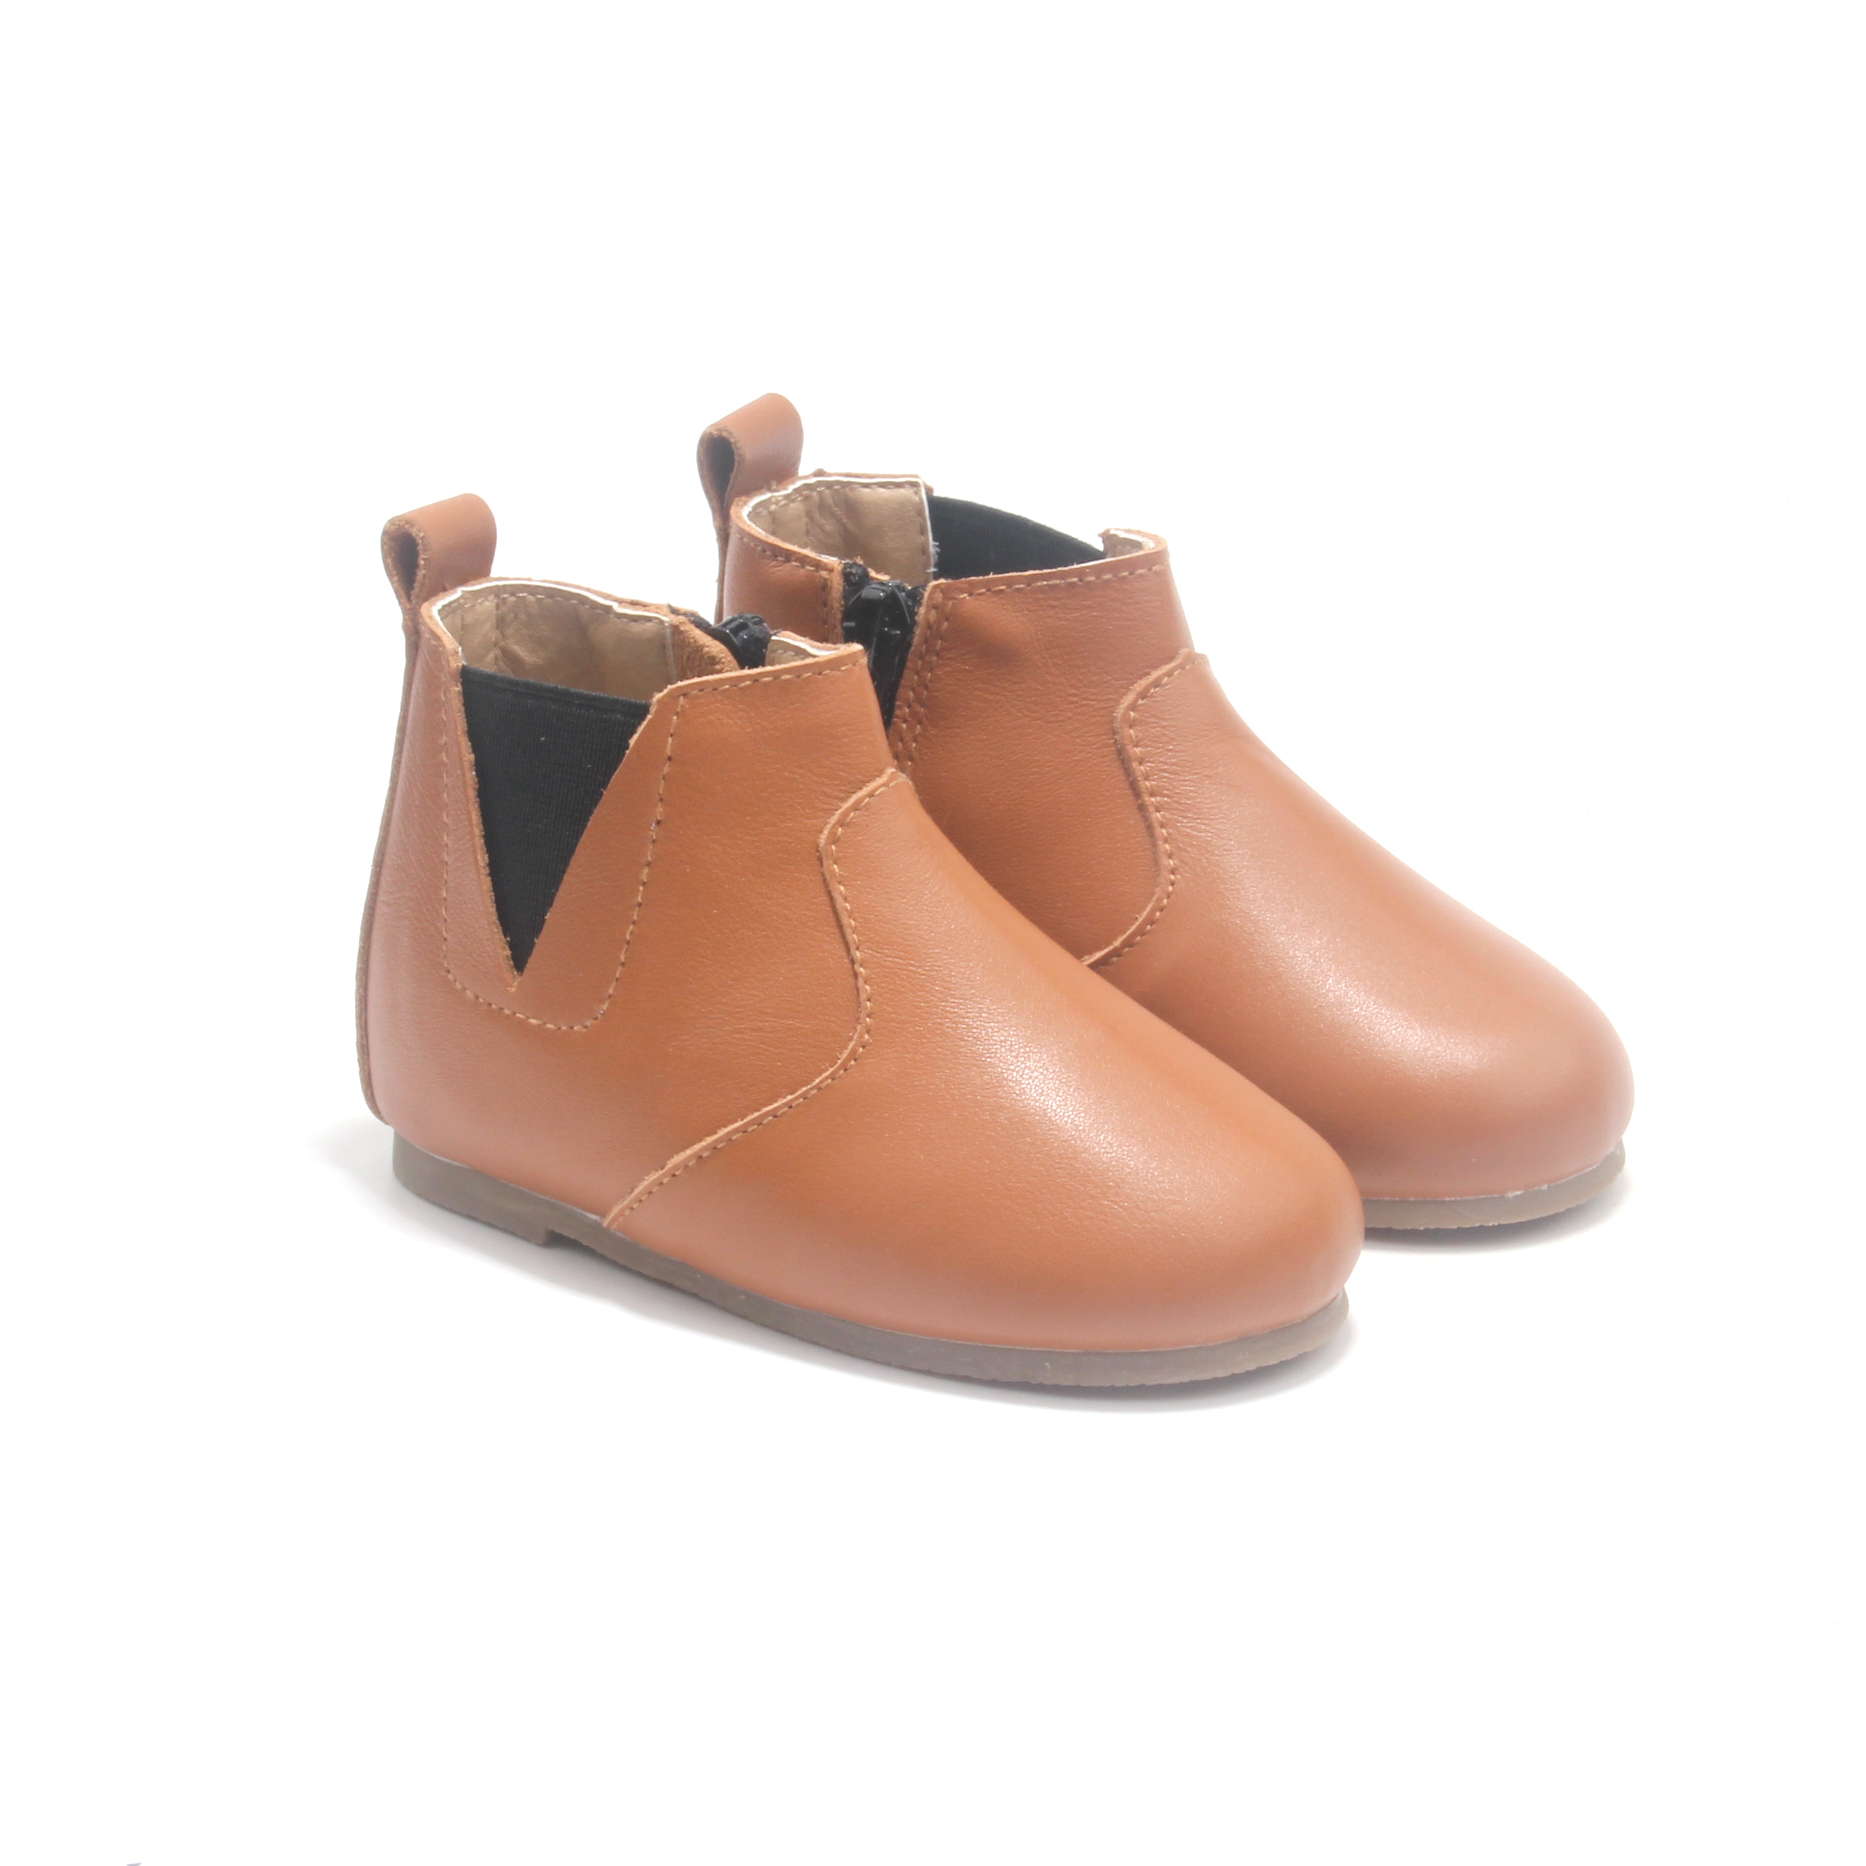 Ankle boots for Kids Leather